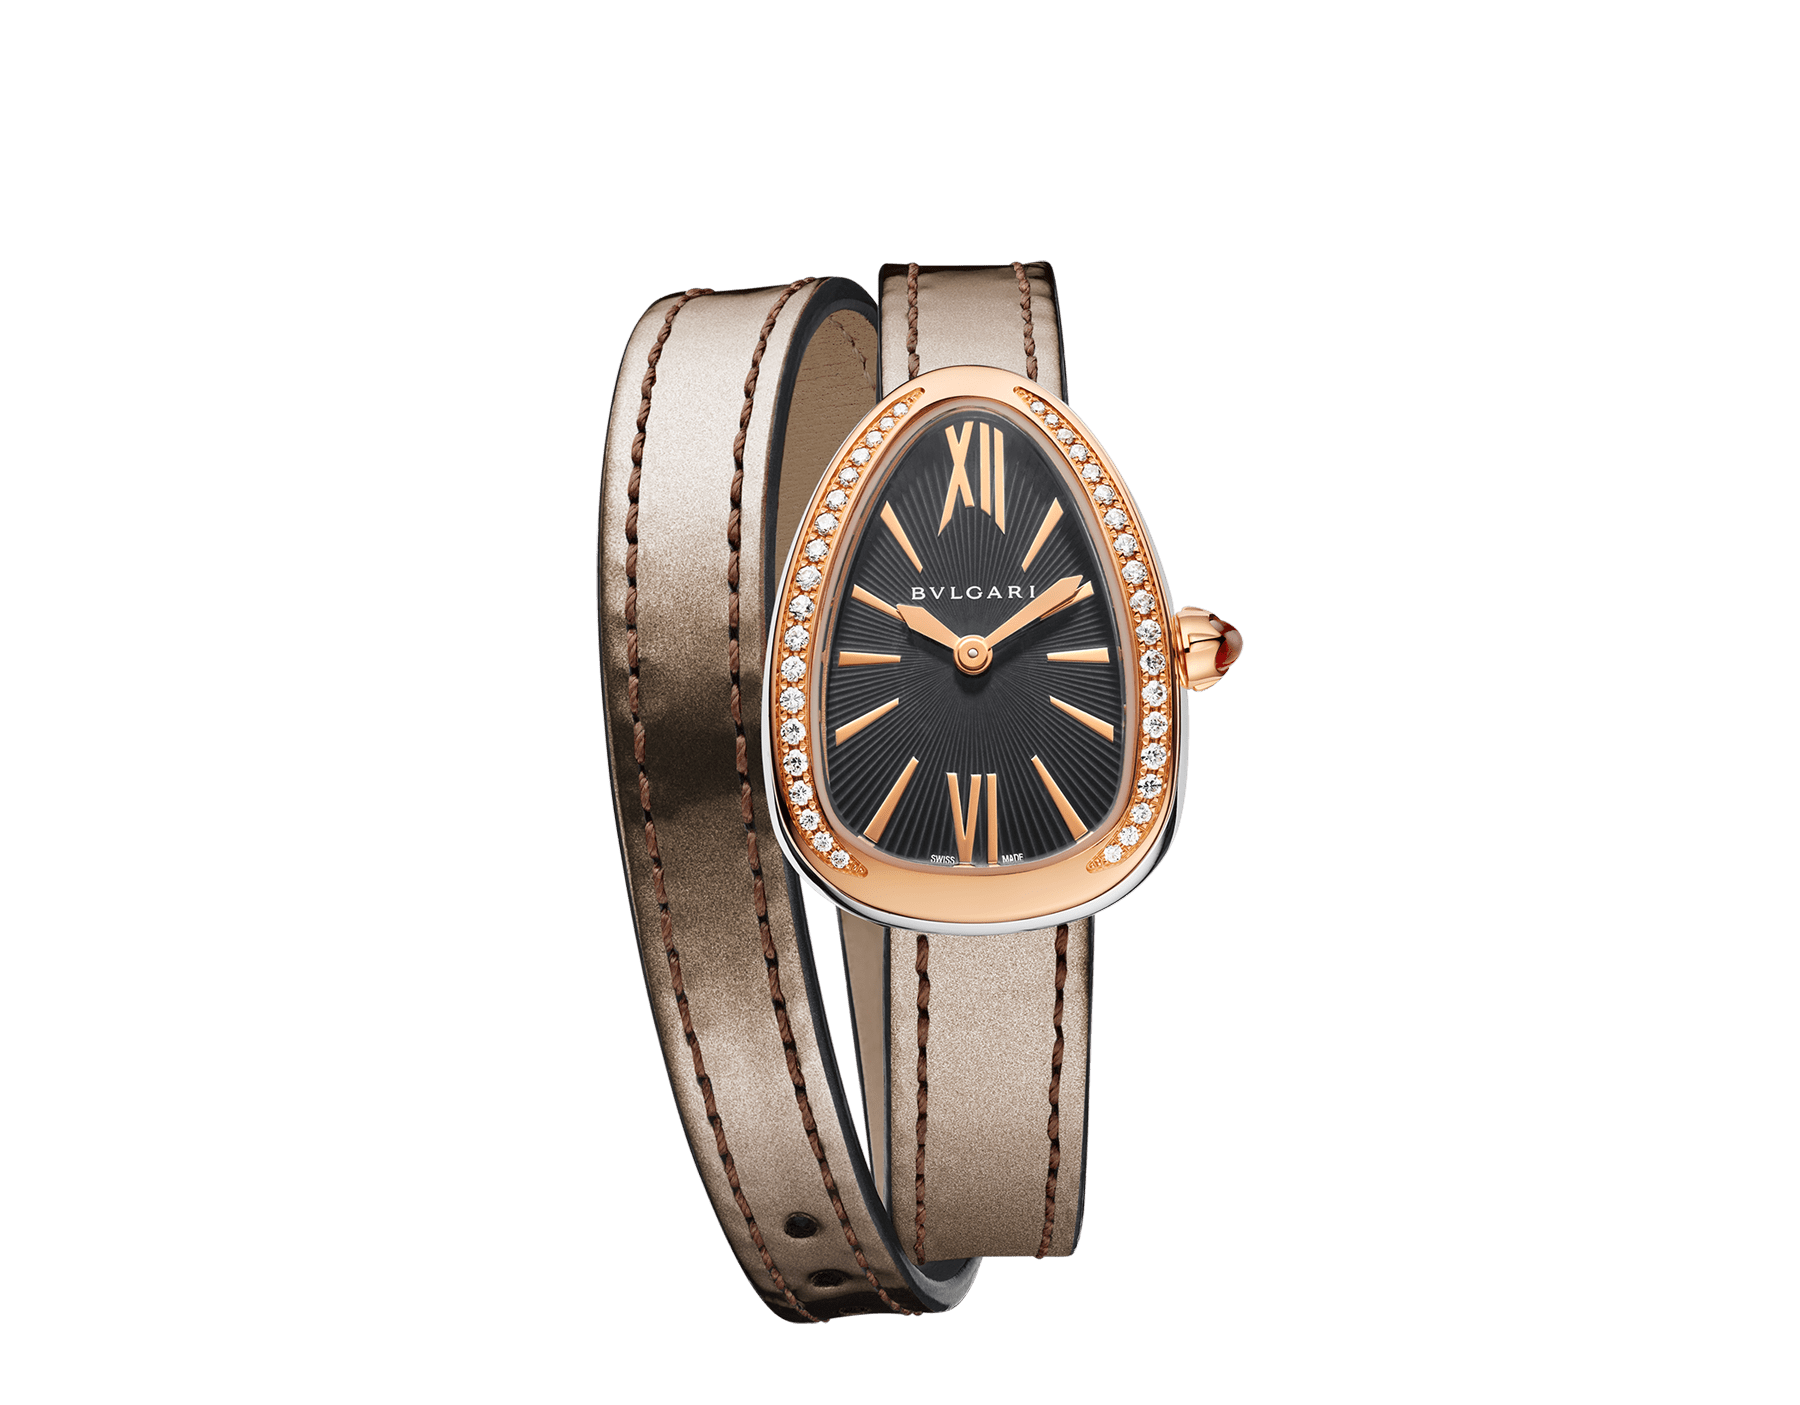 Serpenti watch with stainless steel case, 18 kt rose gold bezel set with diamonds, grey lacquered dial and interchangeable double spiral bracelet in antique bronze brushed metallic calf leather. 102968 image 1